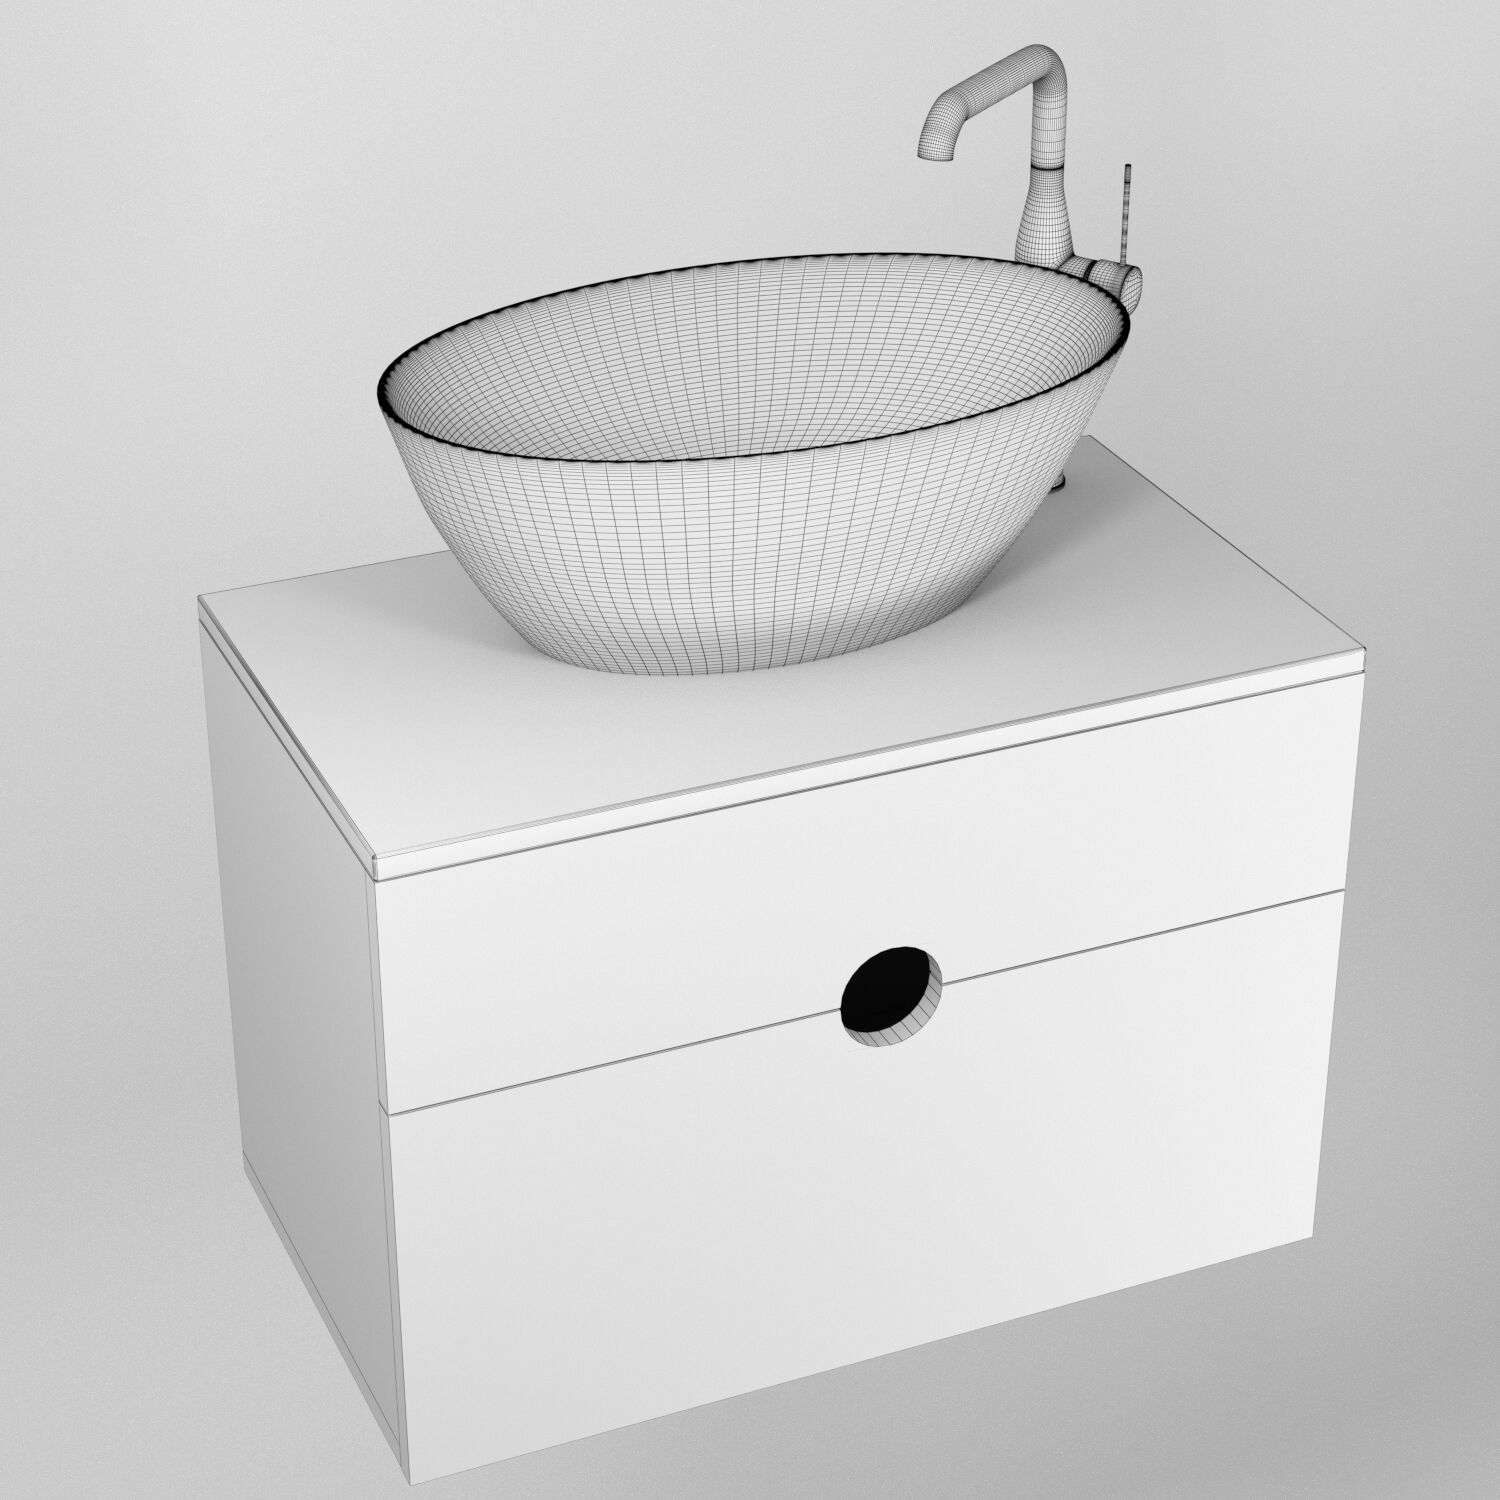 orange sole 75 washbasin with cabinet and grohe essence new faucet 3d model download 3d model orange sole 75 washbasin with cabinet and grohe